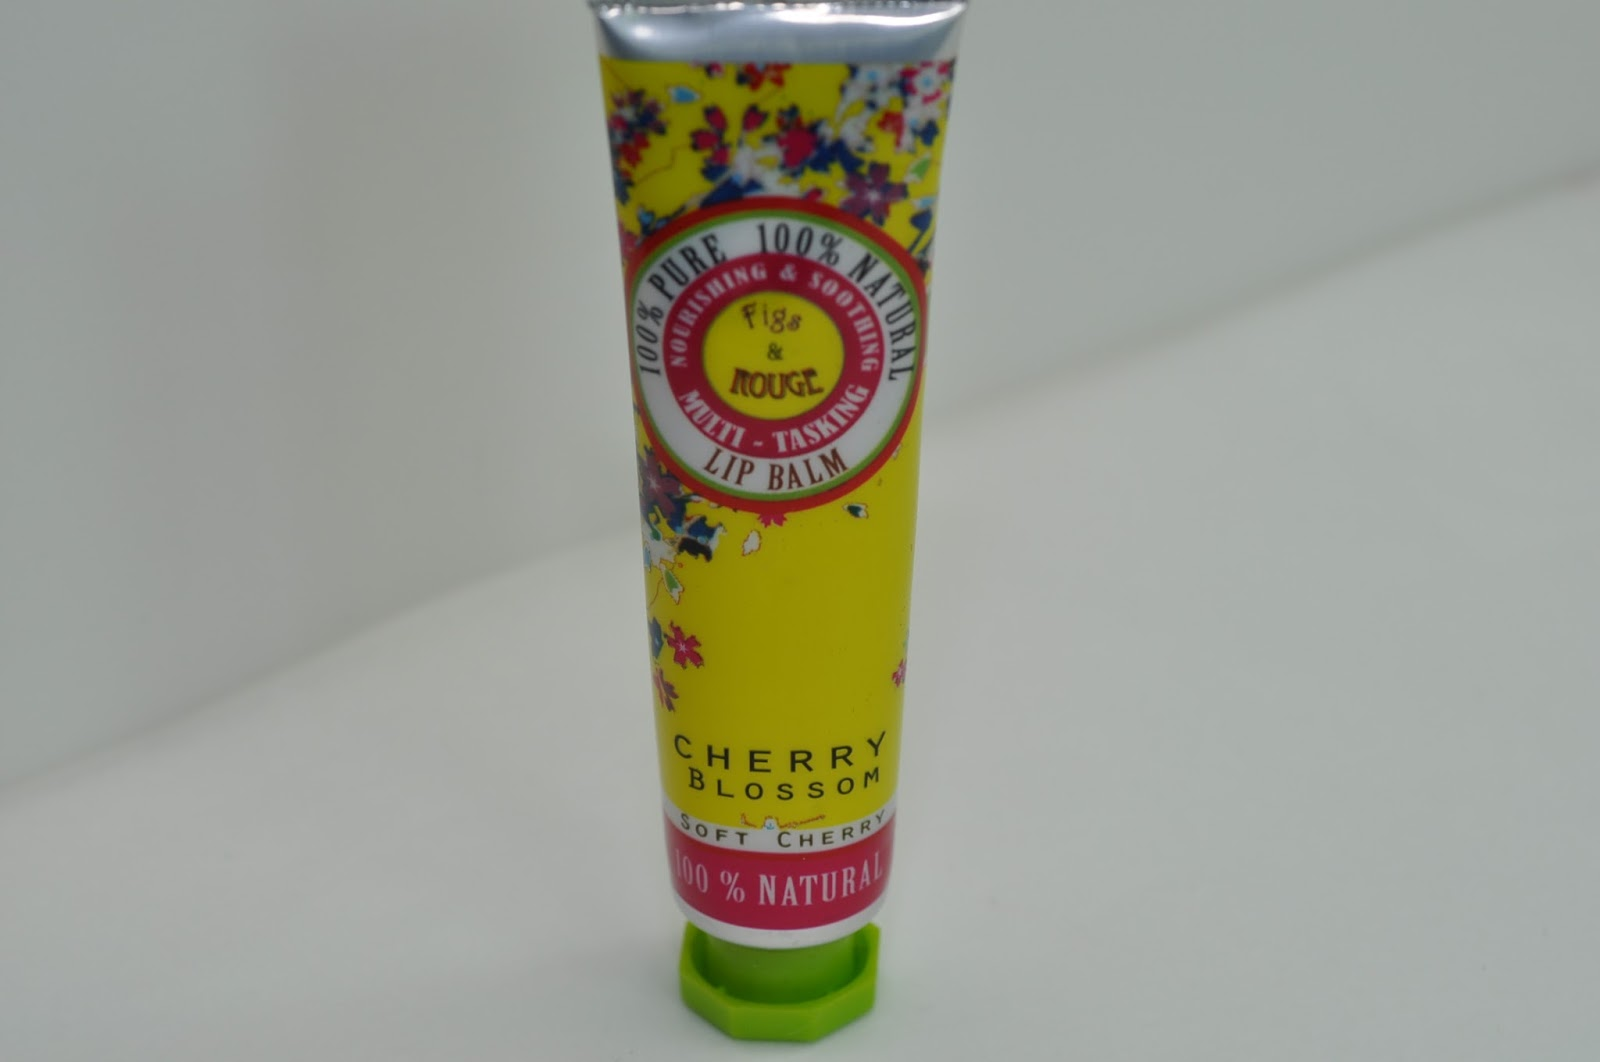 collections figs rouge products tinted balm tube